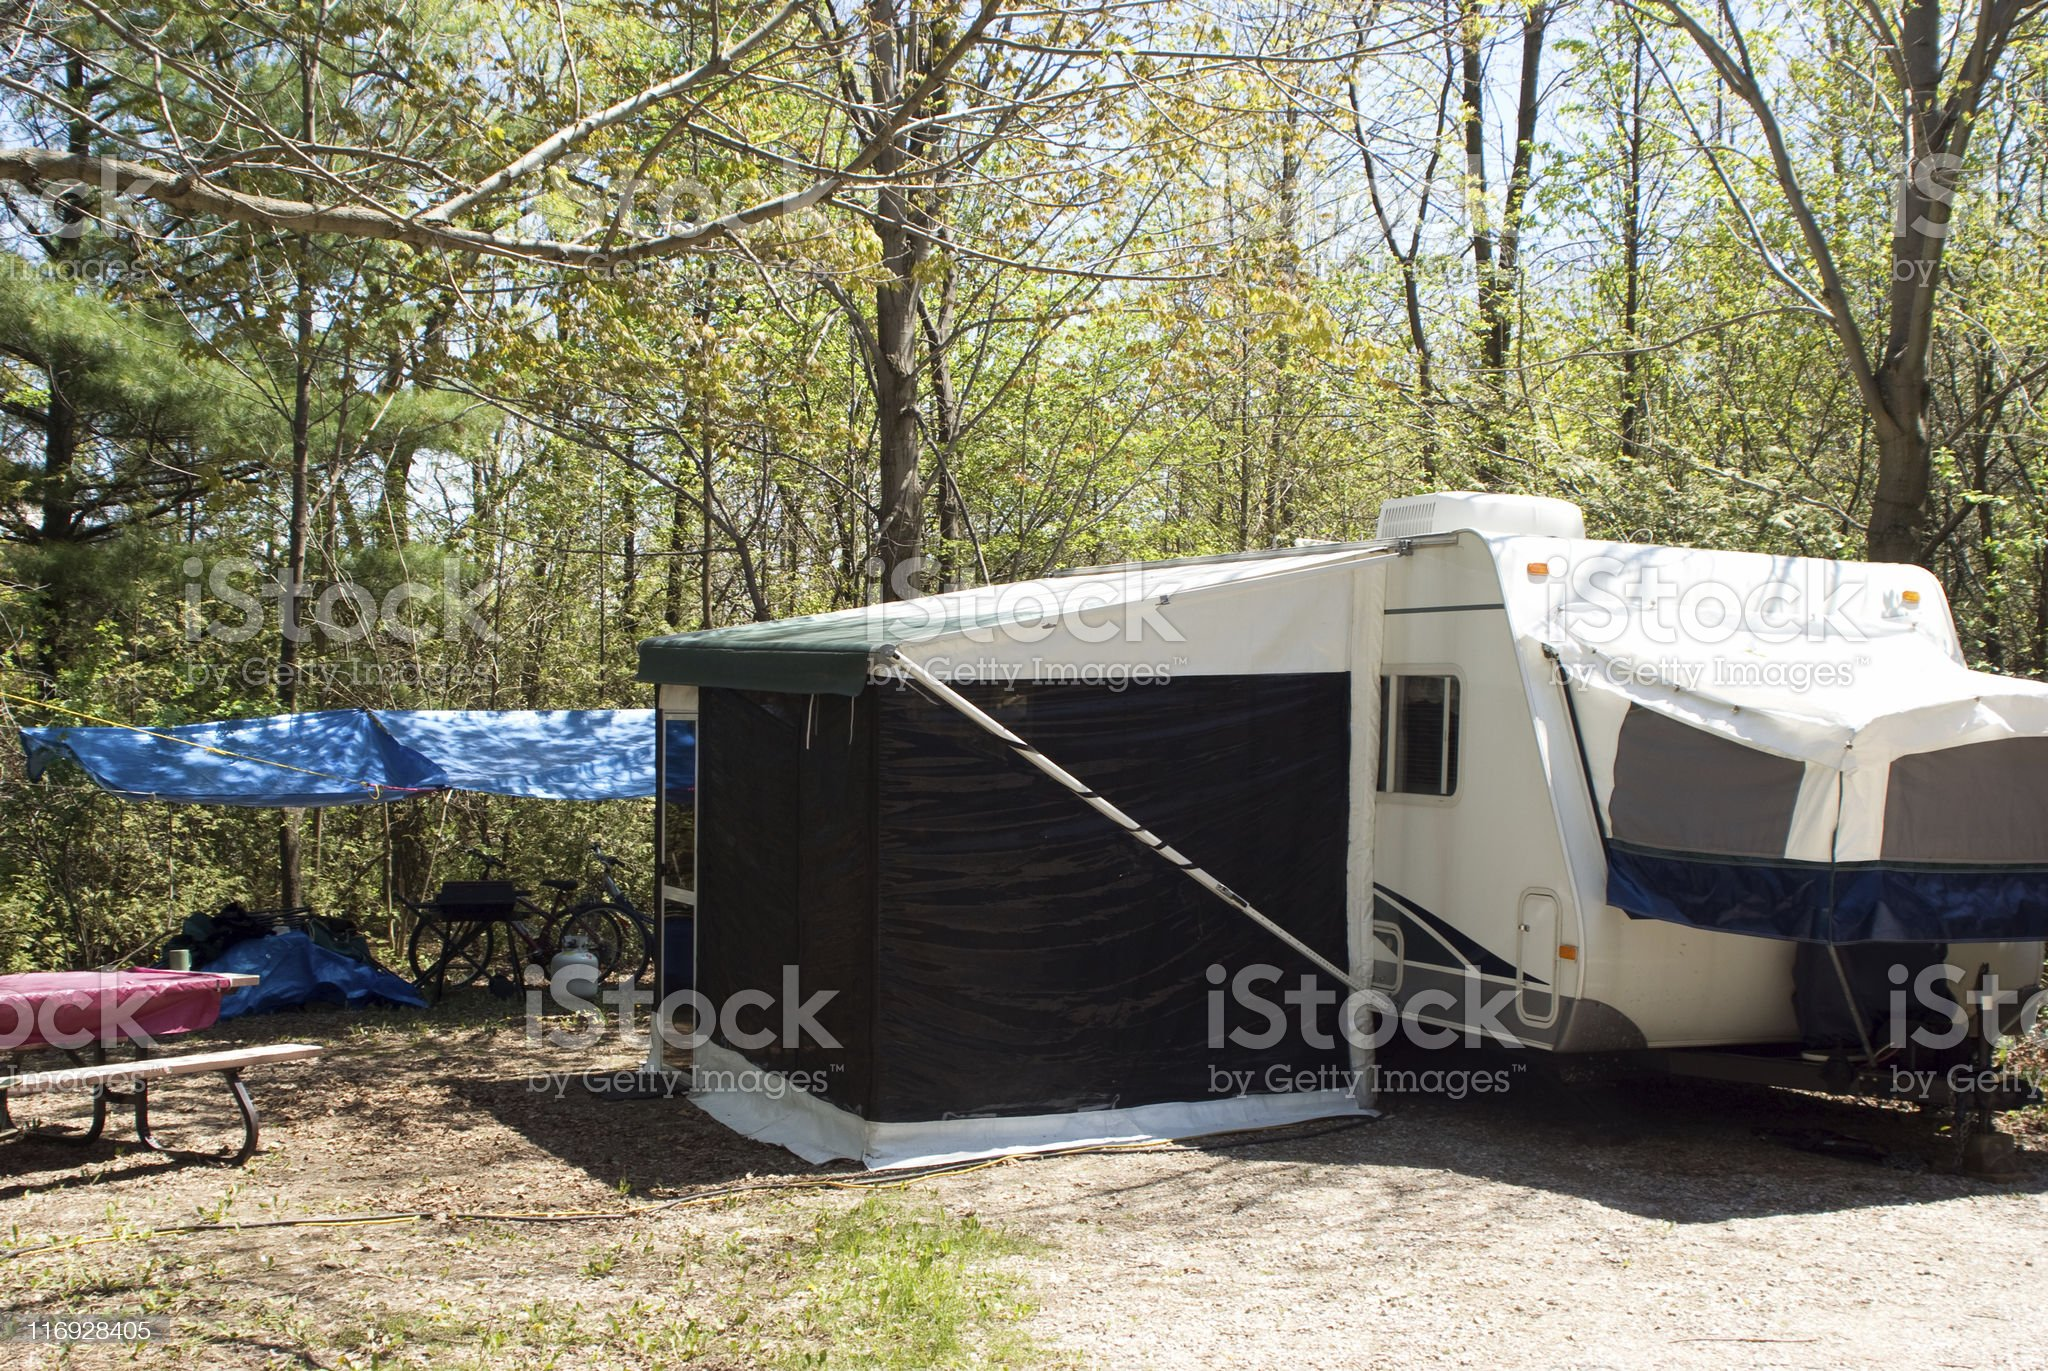 Camp Grounds Vacation Tent Trailer with Screened Porch royalty-free stock photo